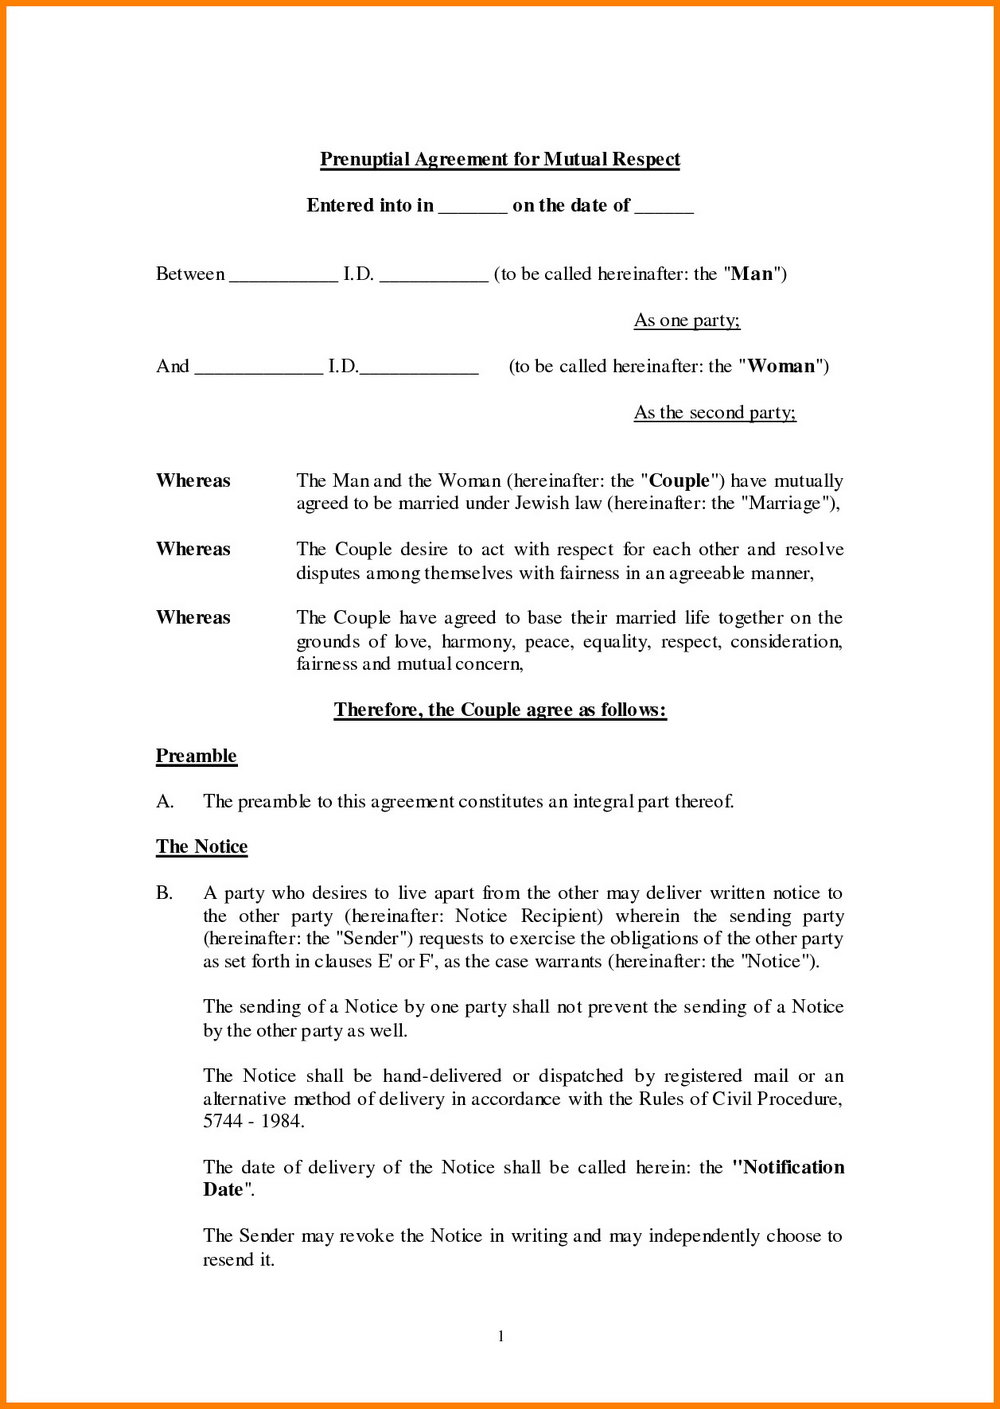 Prenup Agreement Form